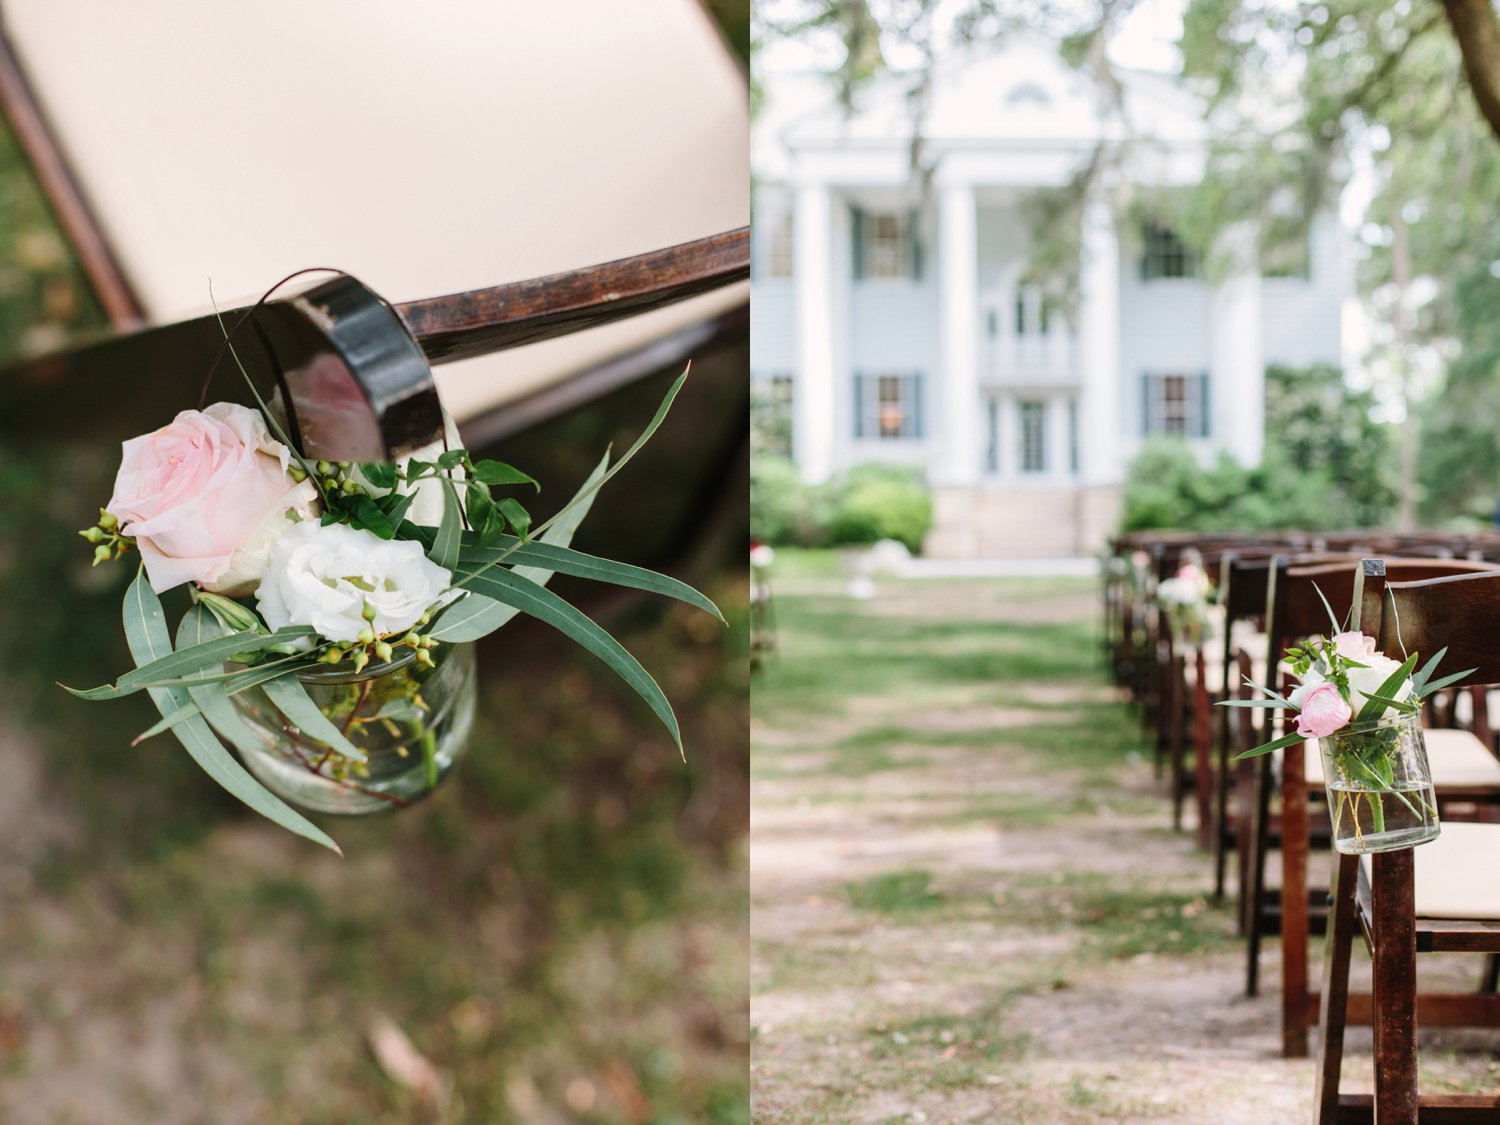 Lindsey_A_Miller_Photography_mcleod_plantation_wedding_charleston_south_carolina_clear_tent_spring_mod_events_036.jpg